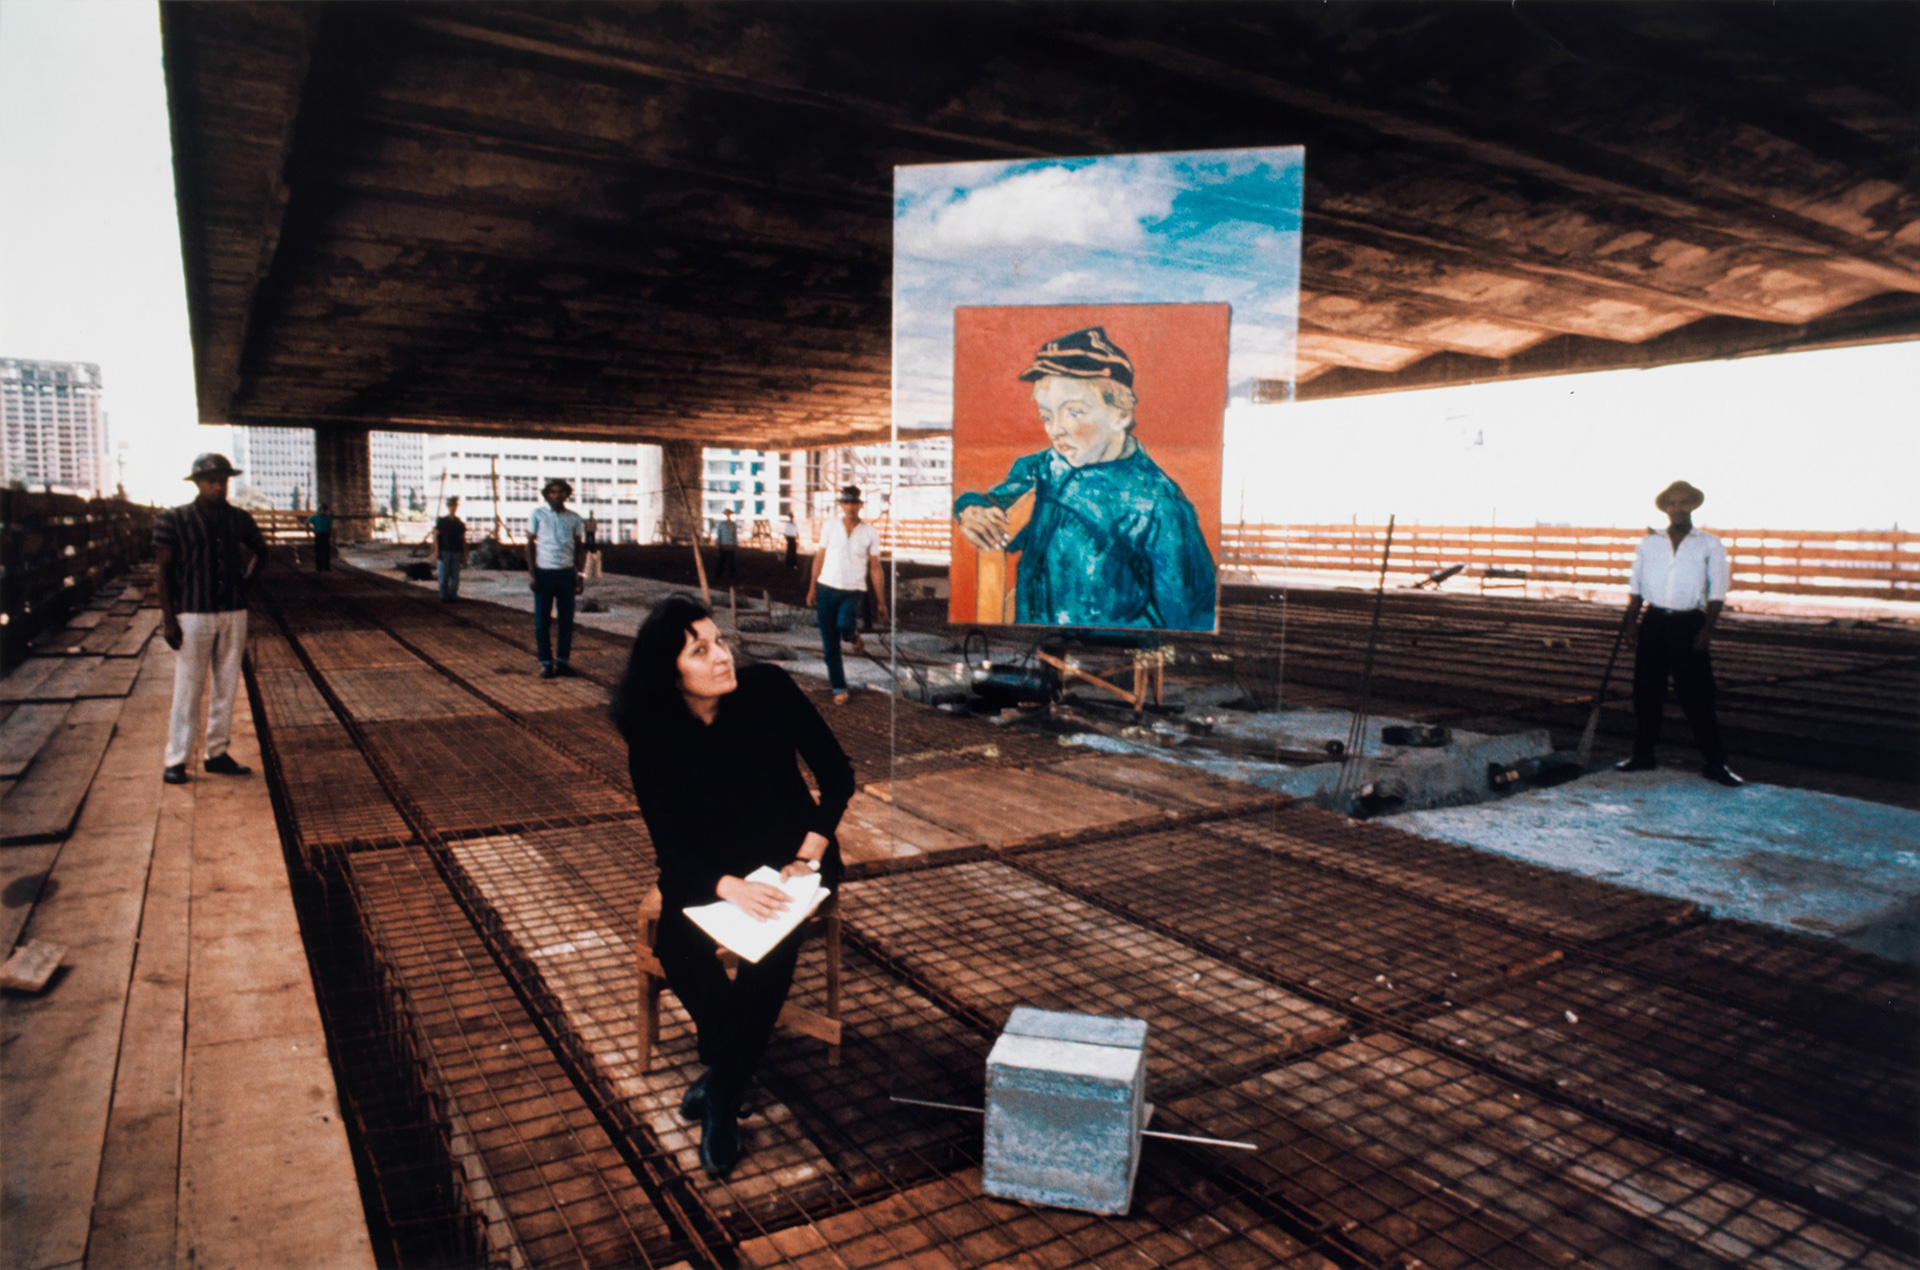 Lina Bo Bardi and a glass easel displaying a Van Gogh painting at the MASP construction site| The Special Golden Lion for Lifetime Achievement, in memoriam, Biennale Architettura 2021 | Lina Bo Bardi | STIRworld